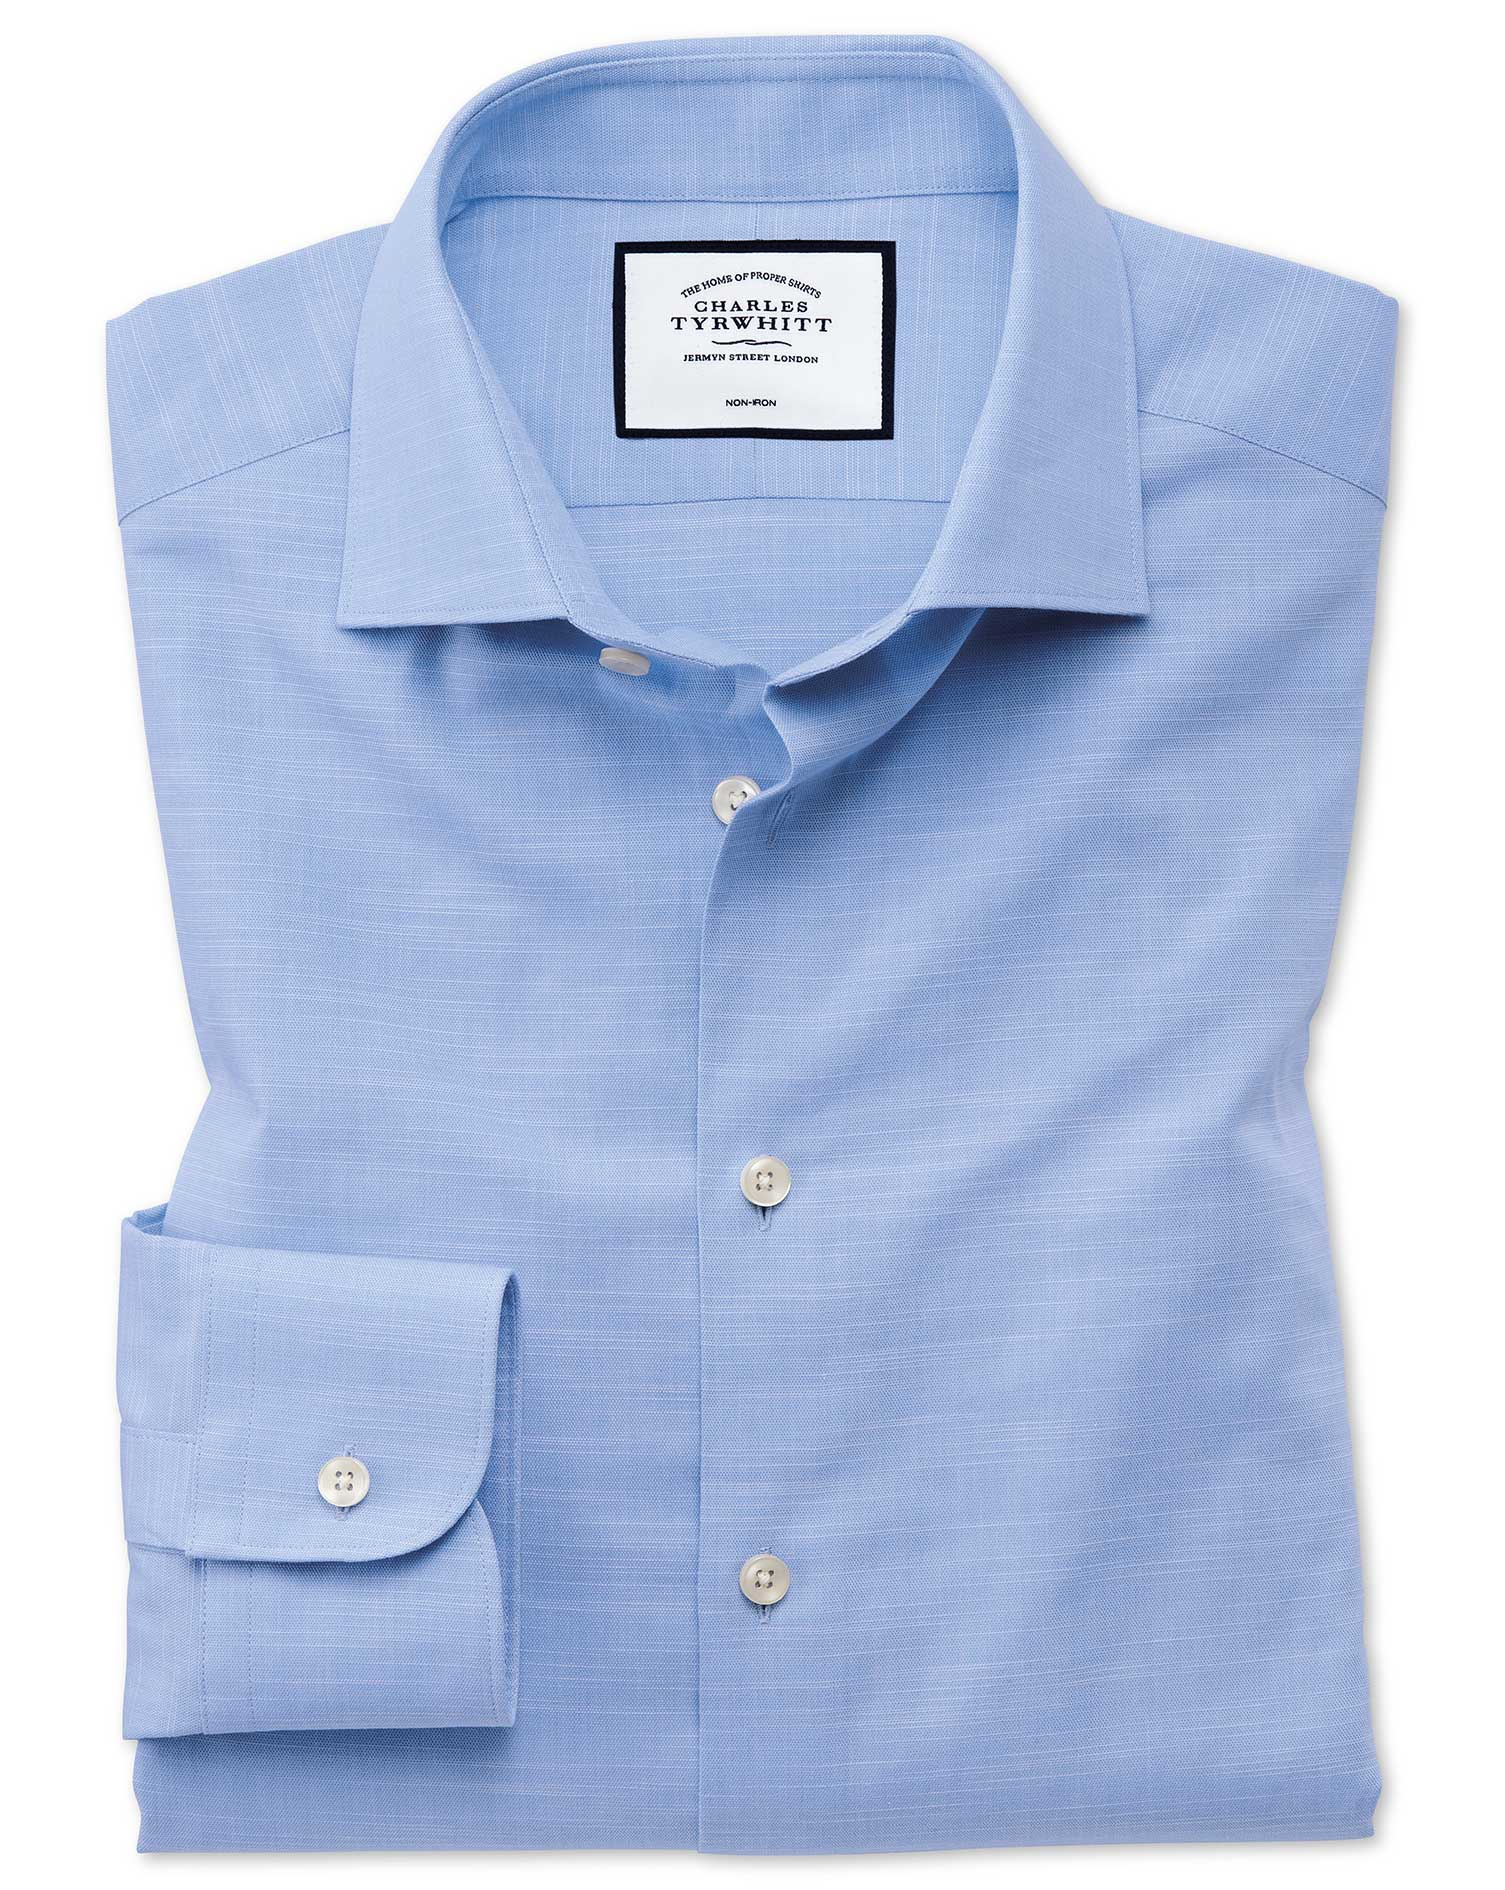 Slim Fit Business Casual Egyptian Cotton Slub Sky Blue Formal Shirt Single Cuff Size 17/34 by Charle